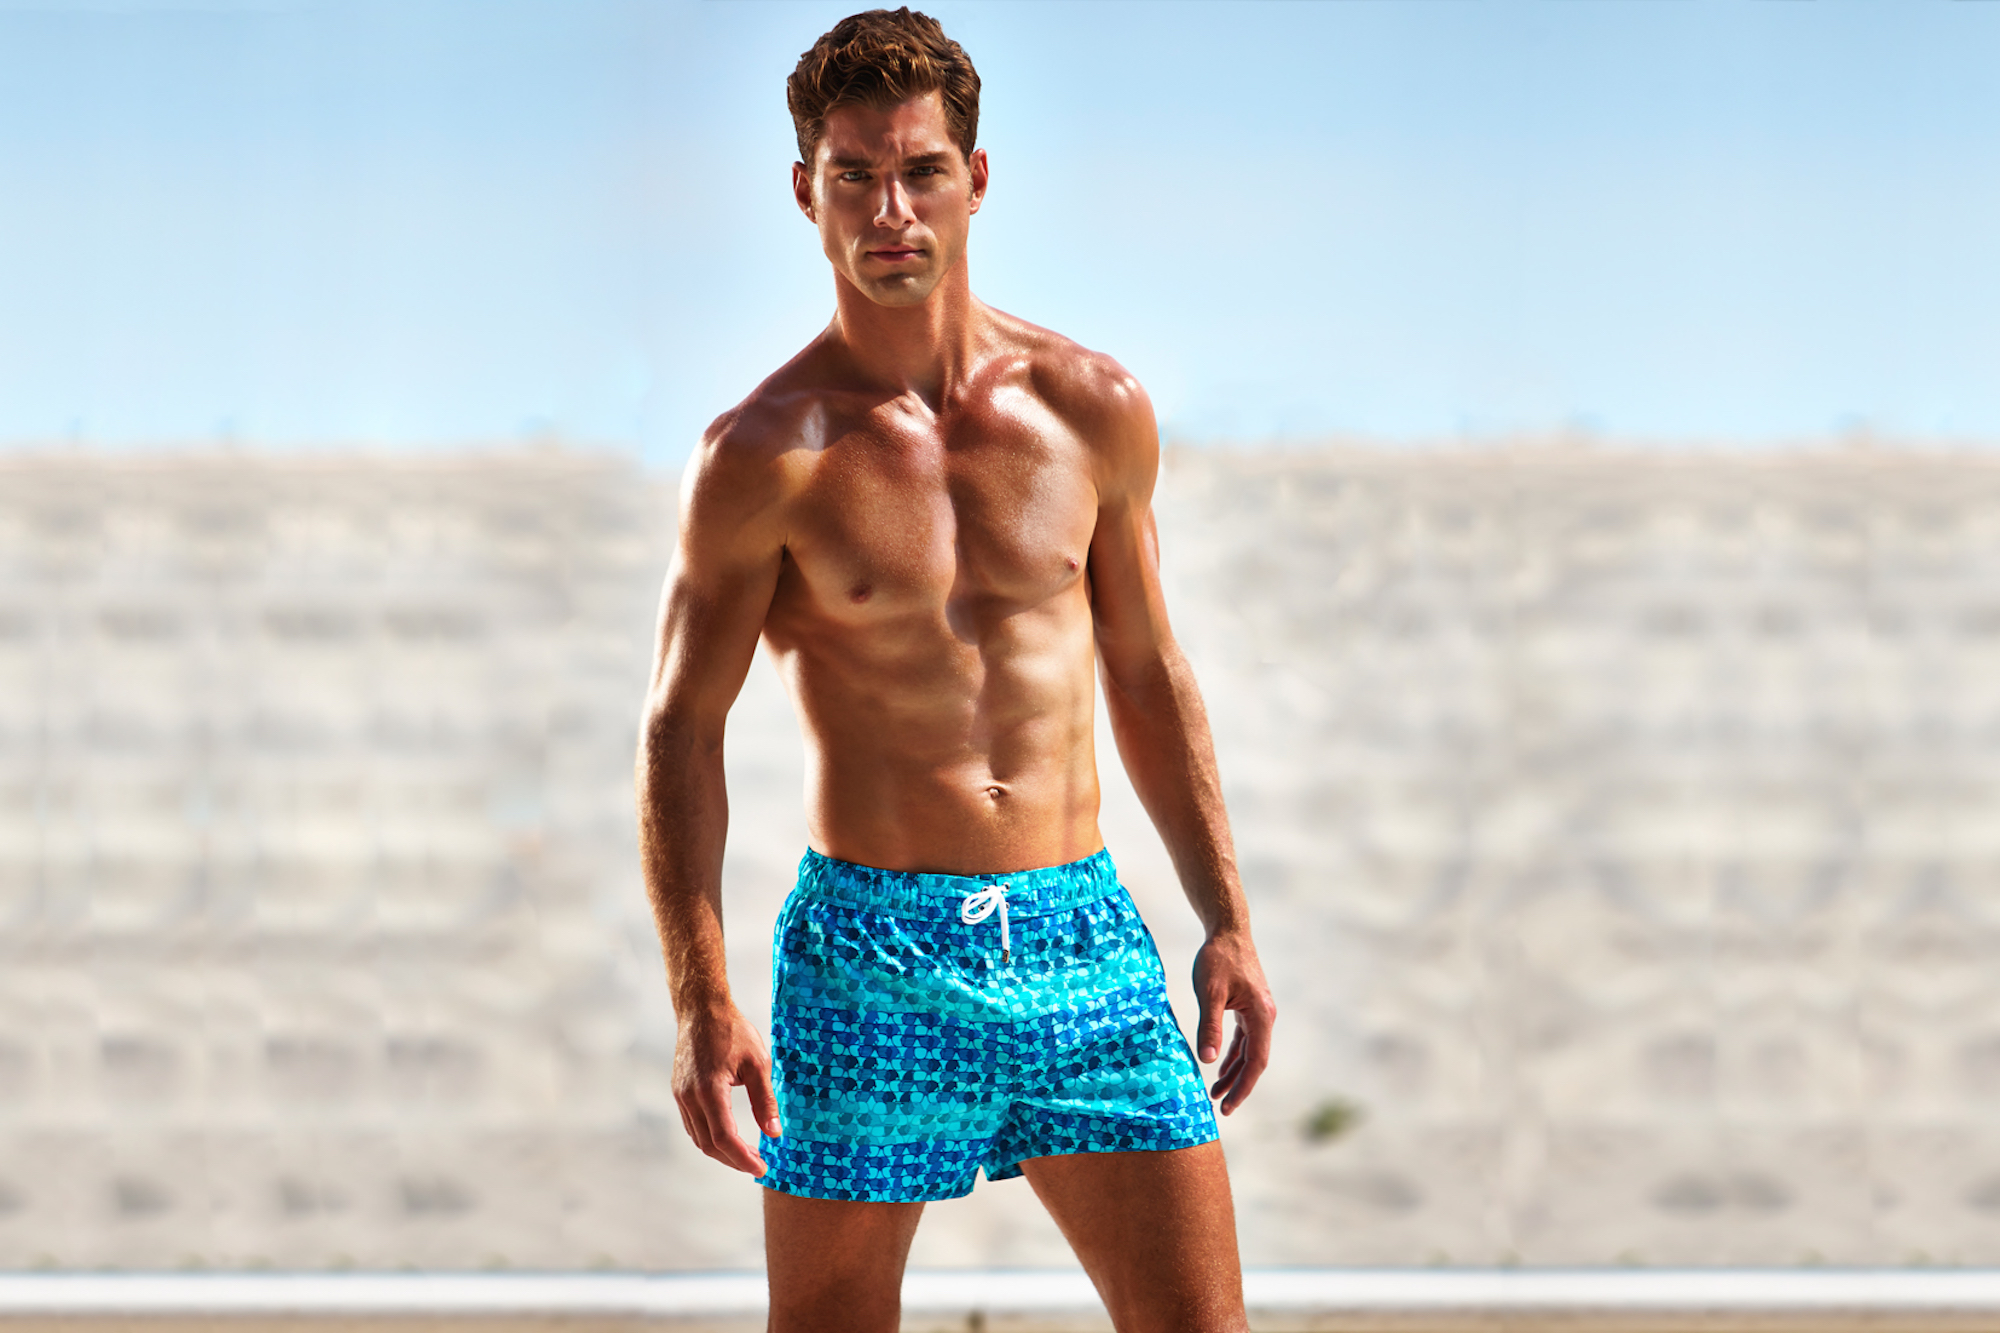 André Ziehe Models Swimwear for 2(X)IST Summer 2015 Campaign